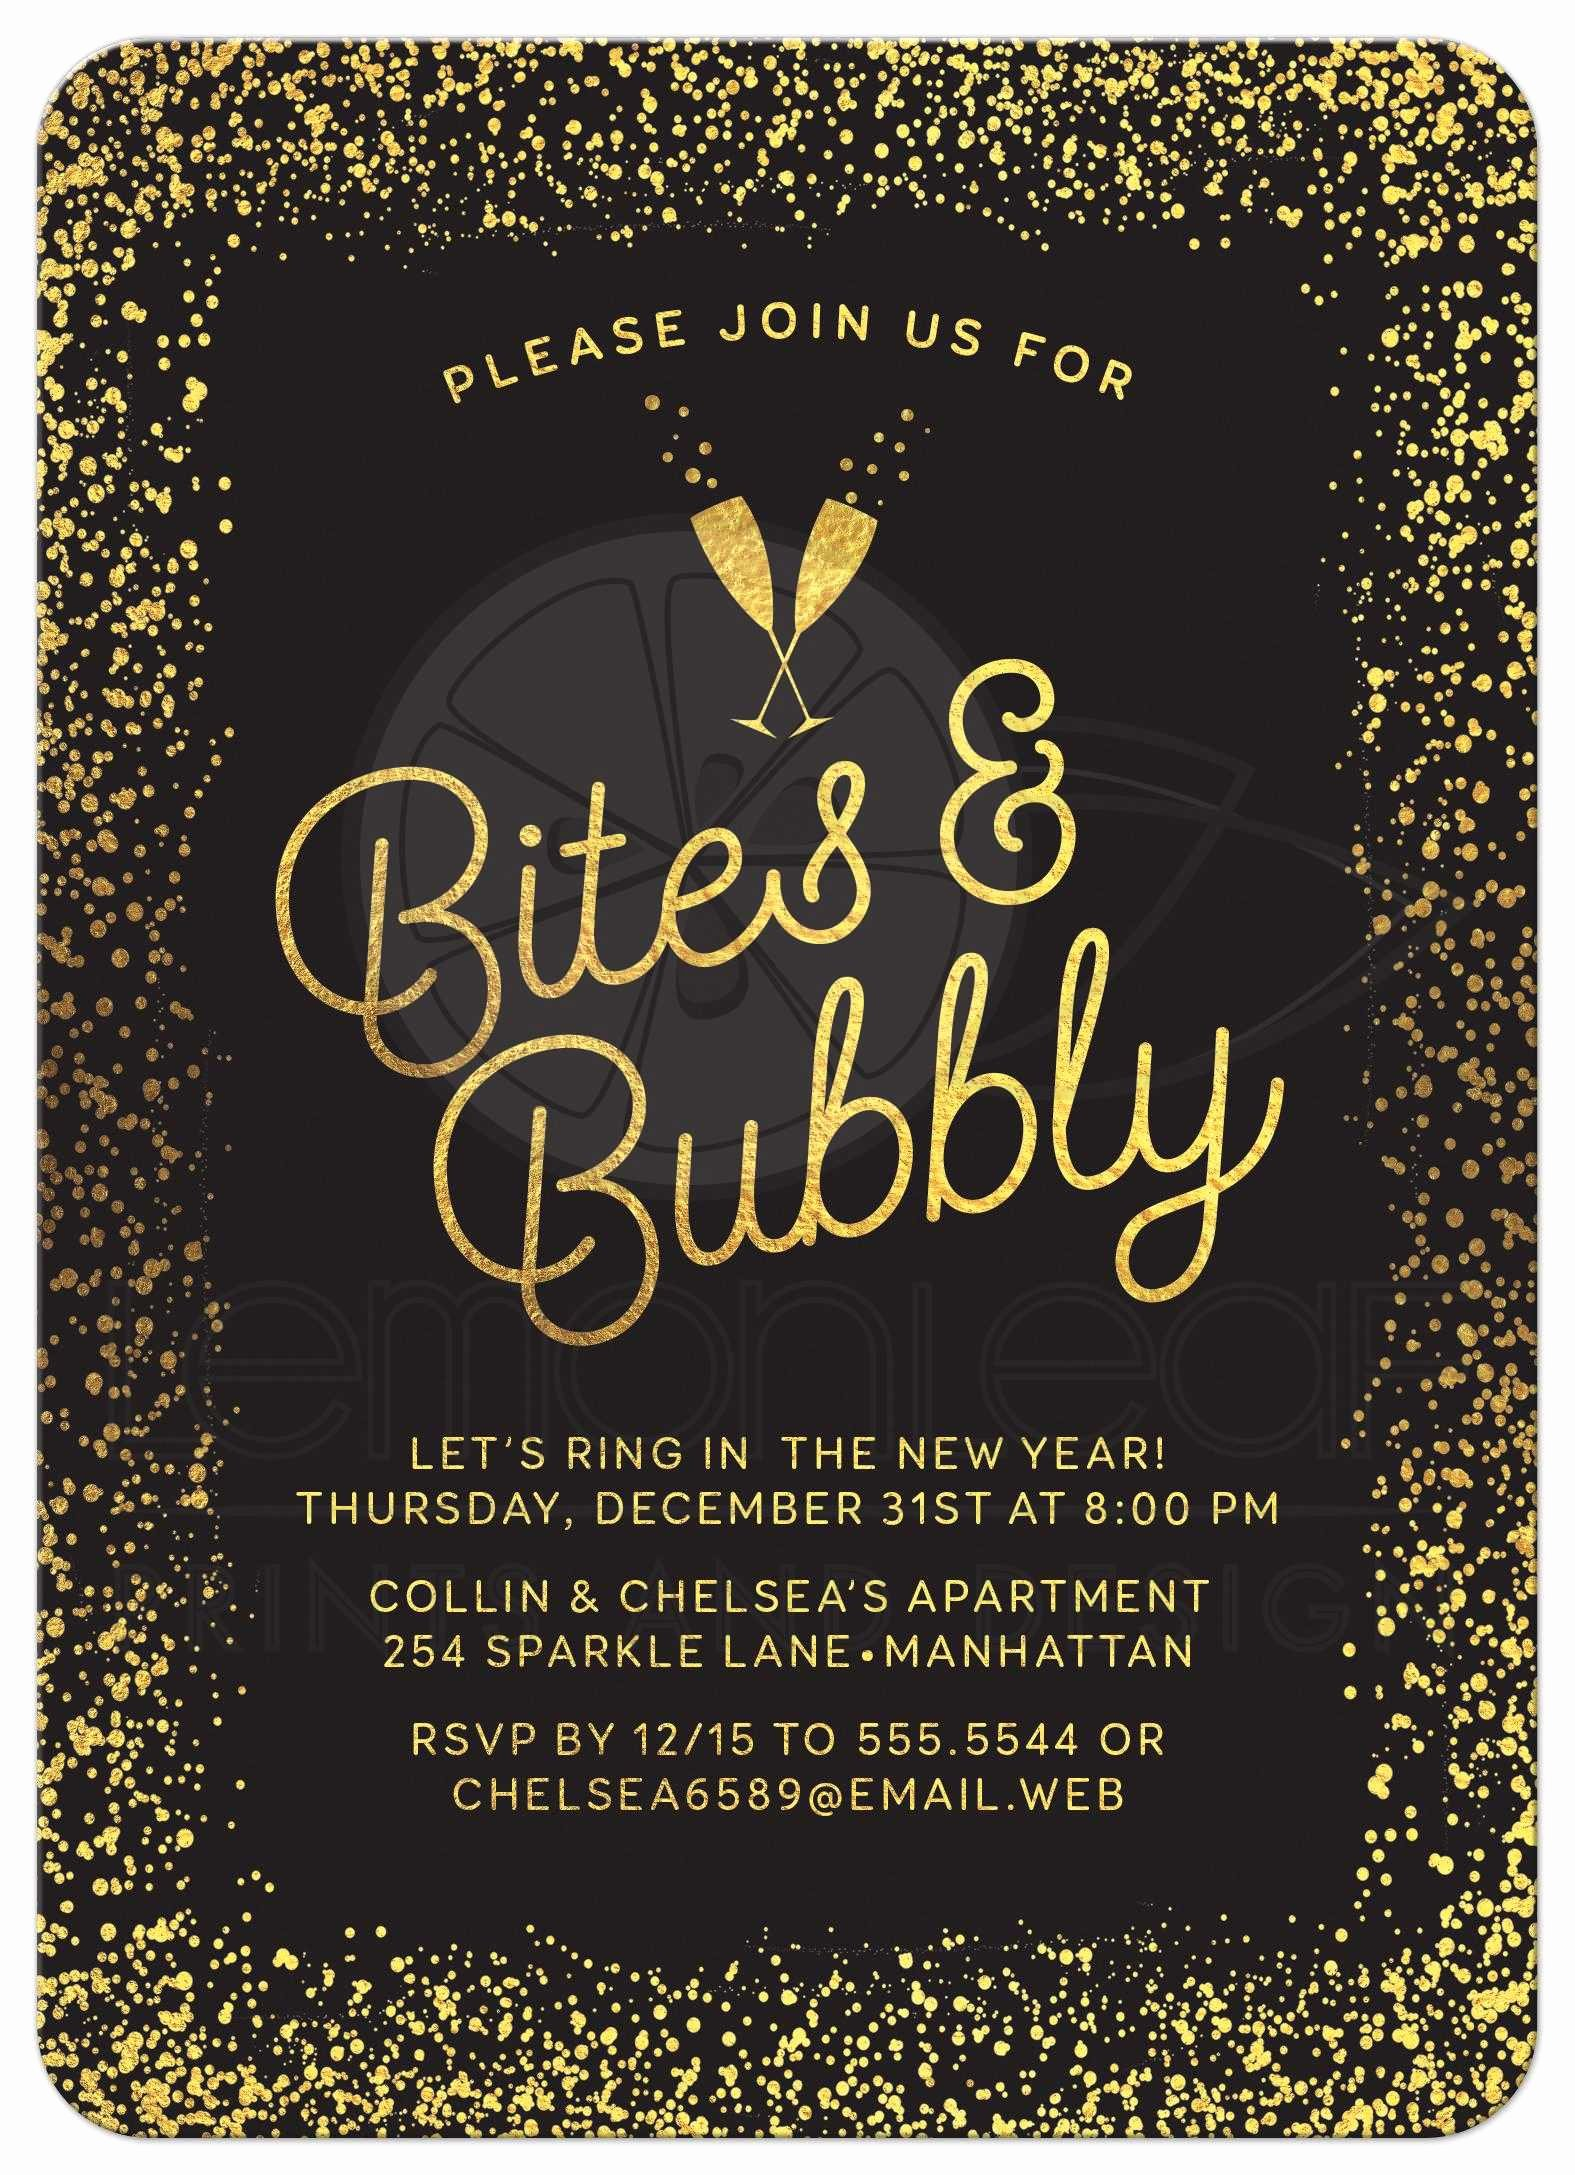 New Years Eve Invitation Templates Awesome New Year S Eve or Holiday Party Invitations Golden Confetti Bites & Bubbly